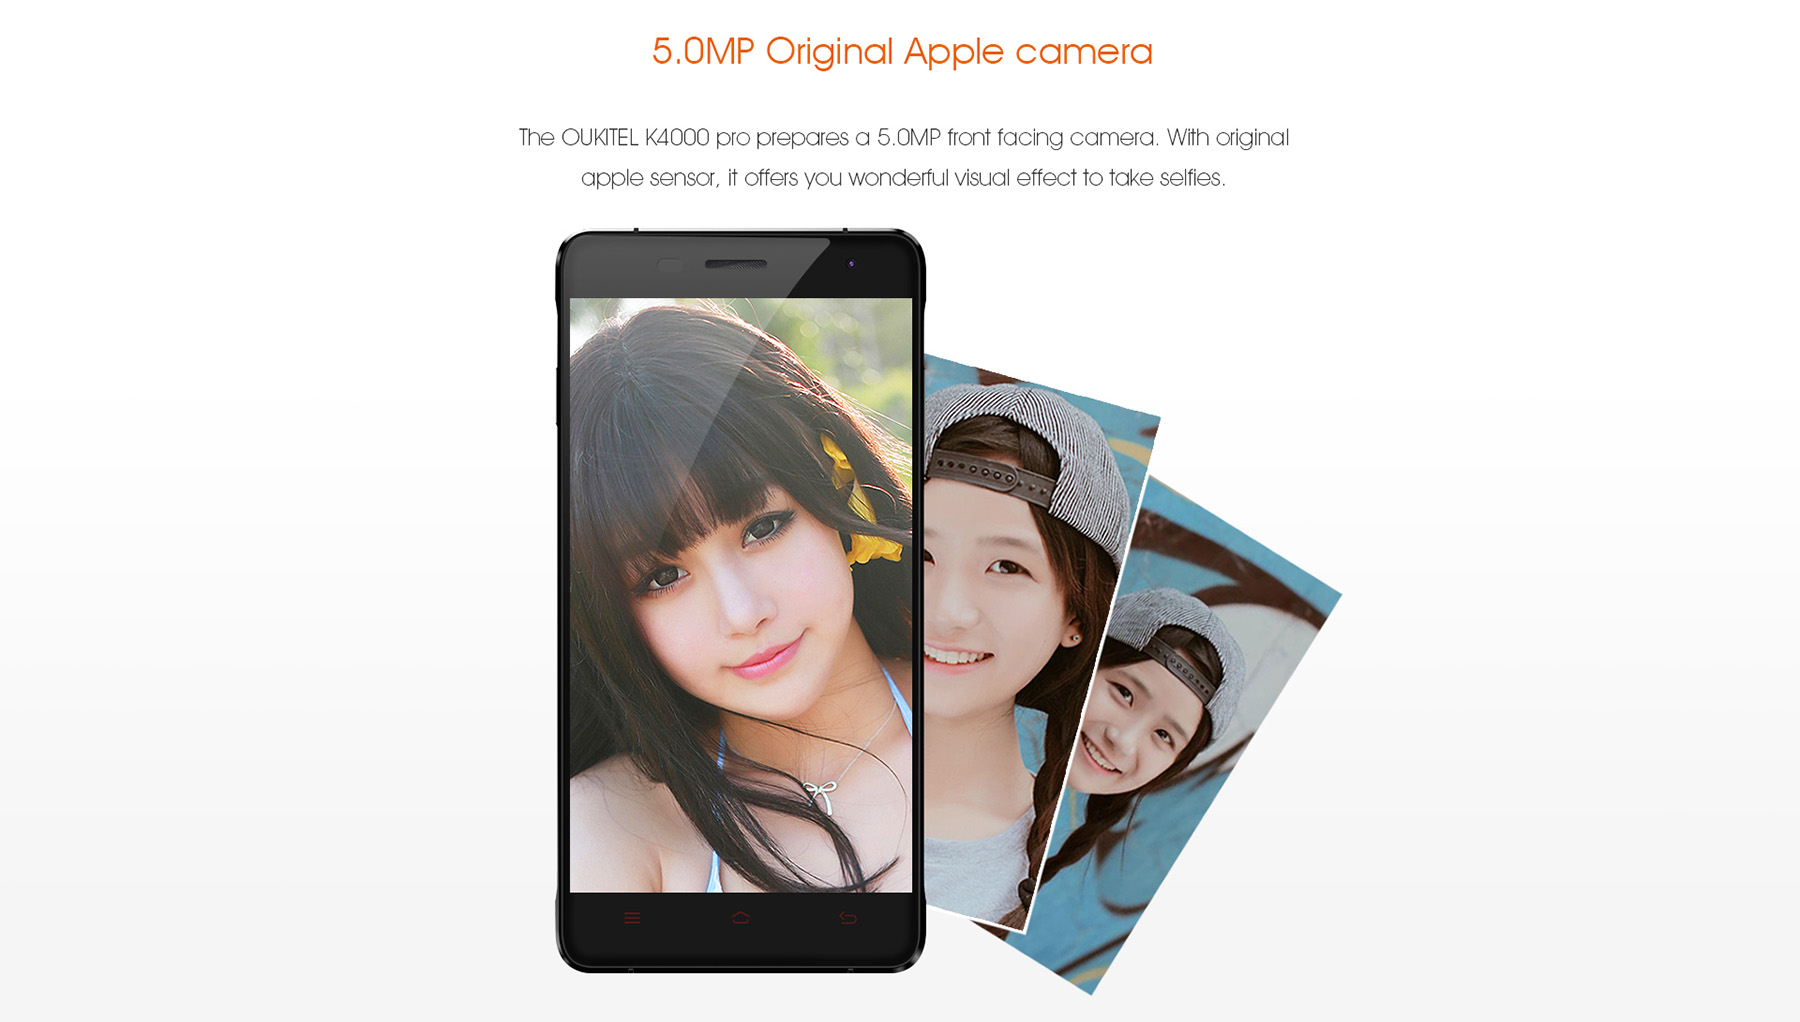 OUKITEL K4000 Pro Android 5.1 5.0 inch 2.5D Arc Screen 4G Smartphone MTK6735 1.0GHz Quad Core 1.0GHz 2GB RAM 16GB ROM OTG OTA GPS